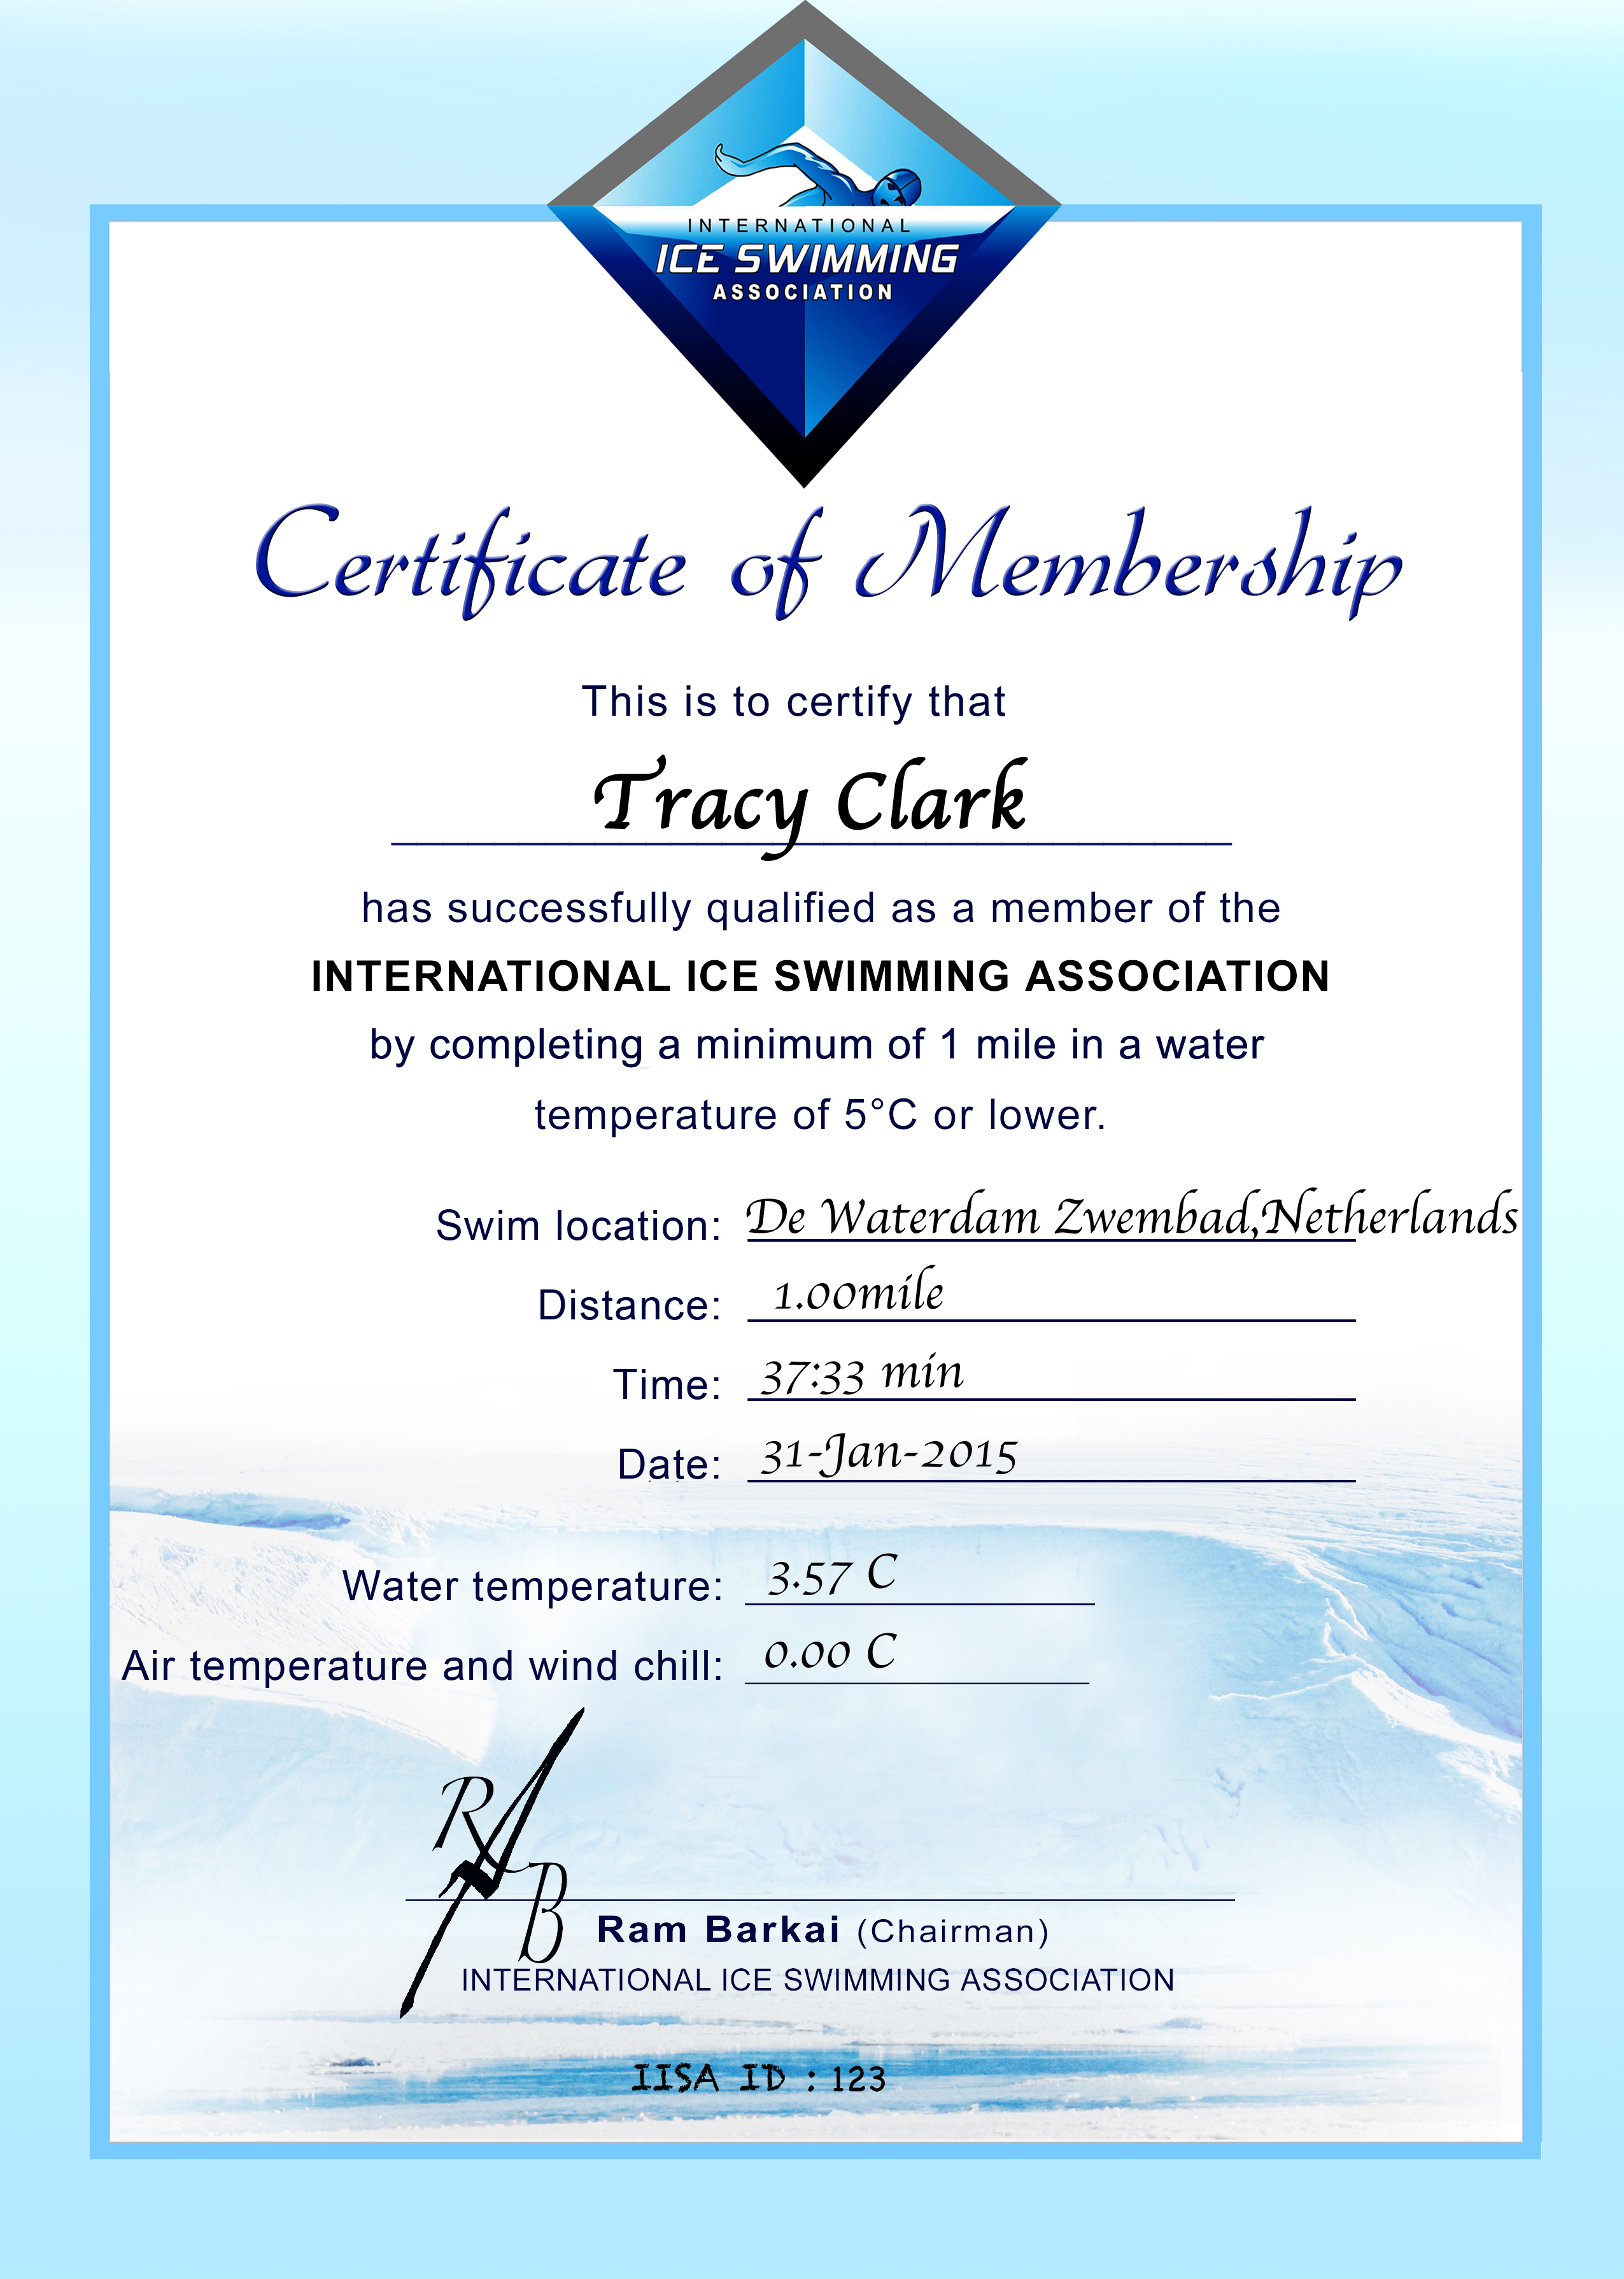 Ice Mile Certificate - Tracy Clark